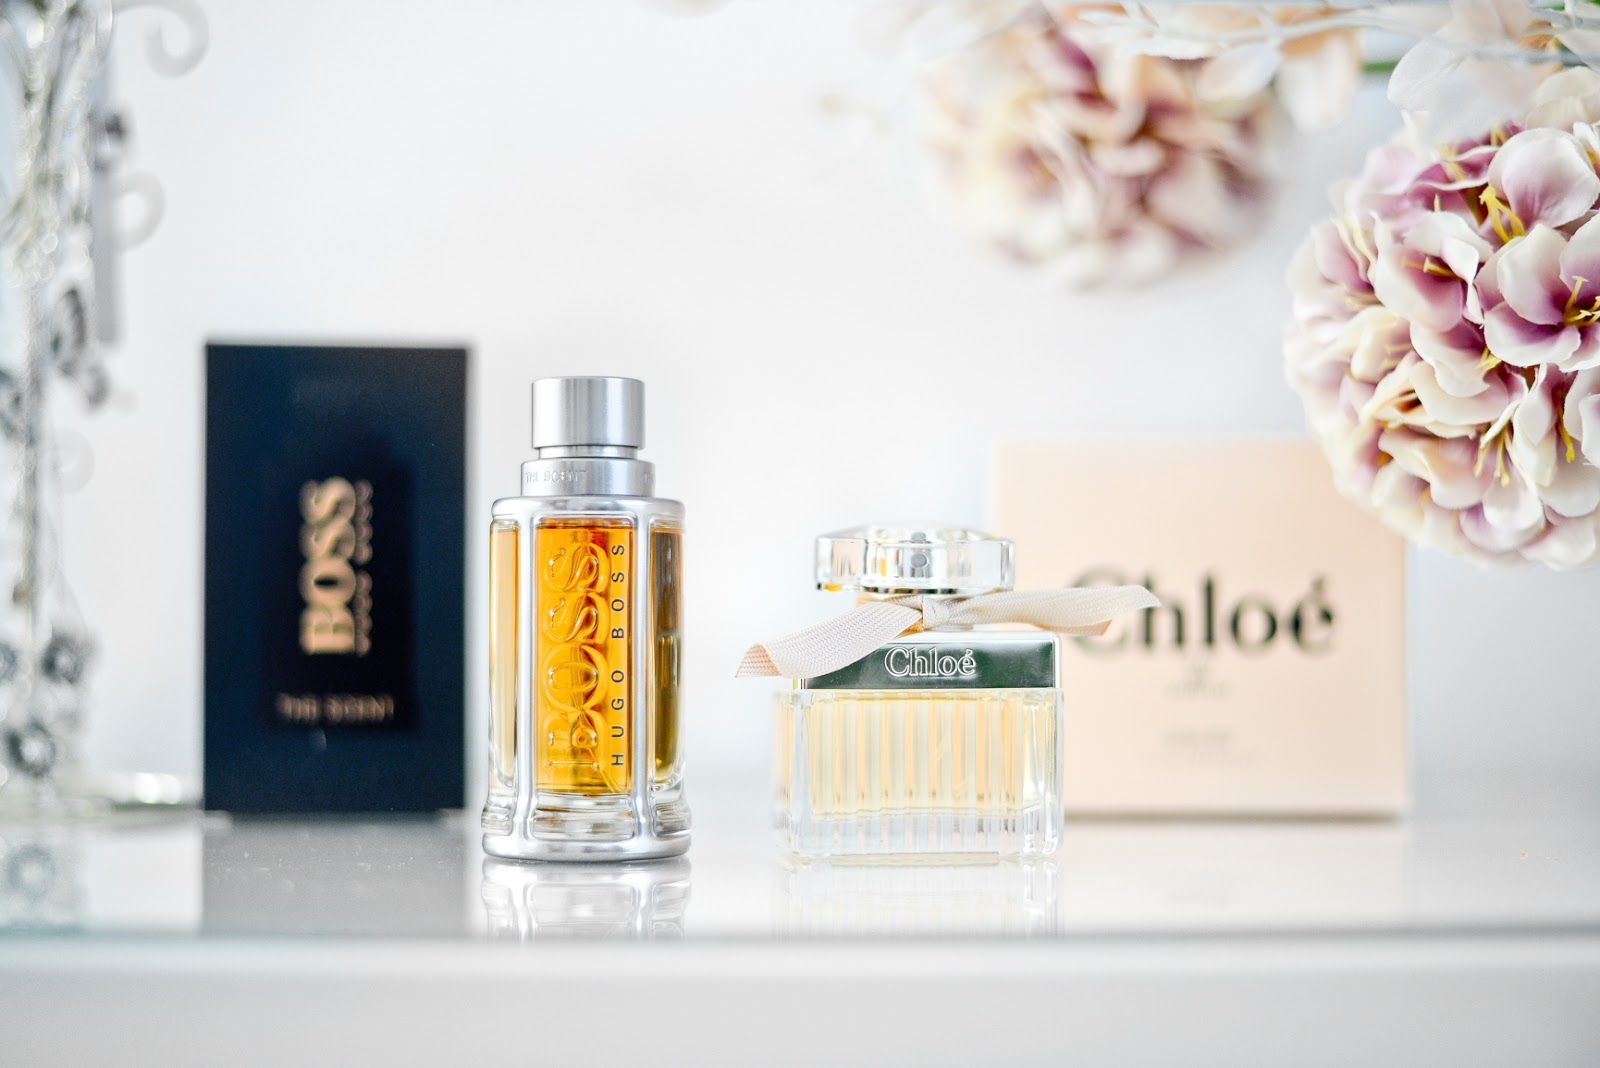 hhugo boss the scent, chloe signature, christmas gift ideas, aftershave for christmas, fragrance direct